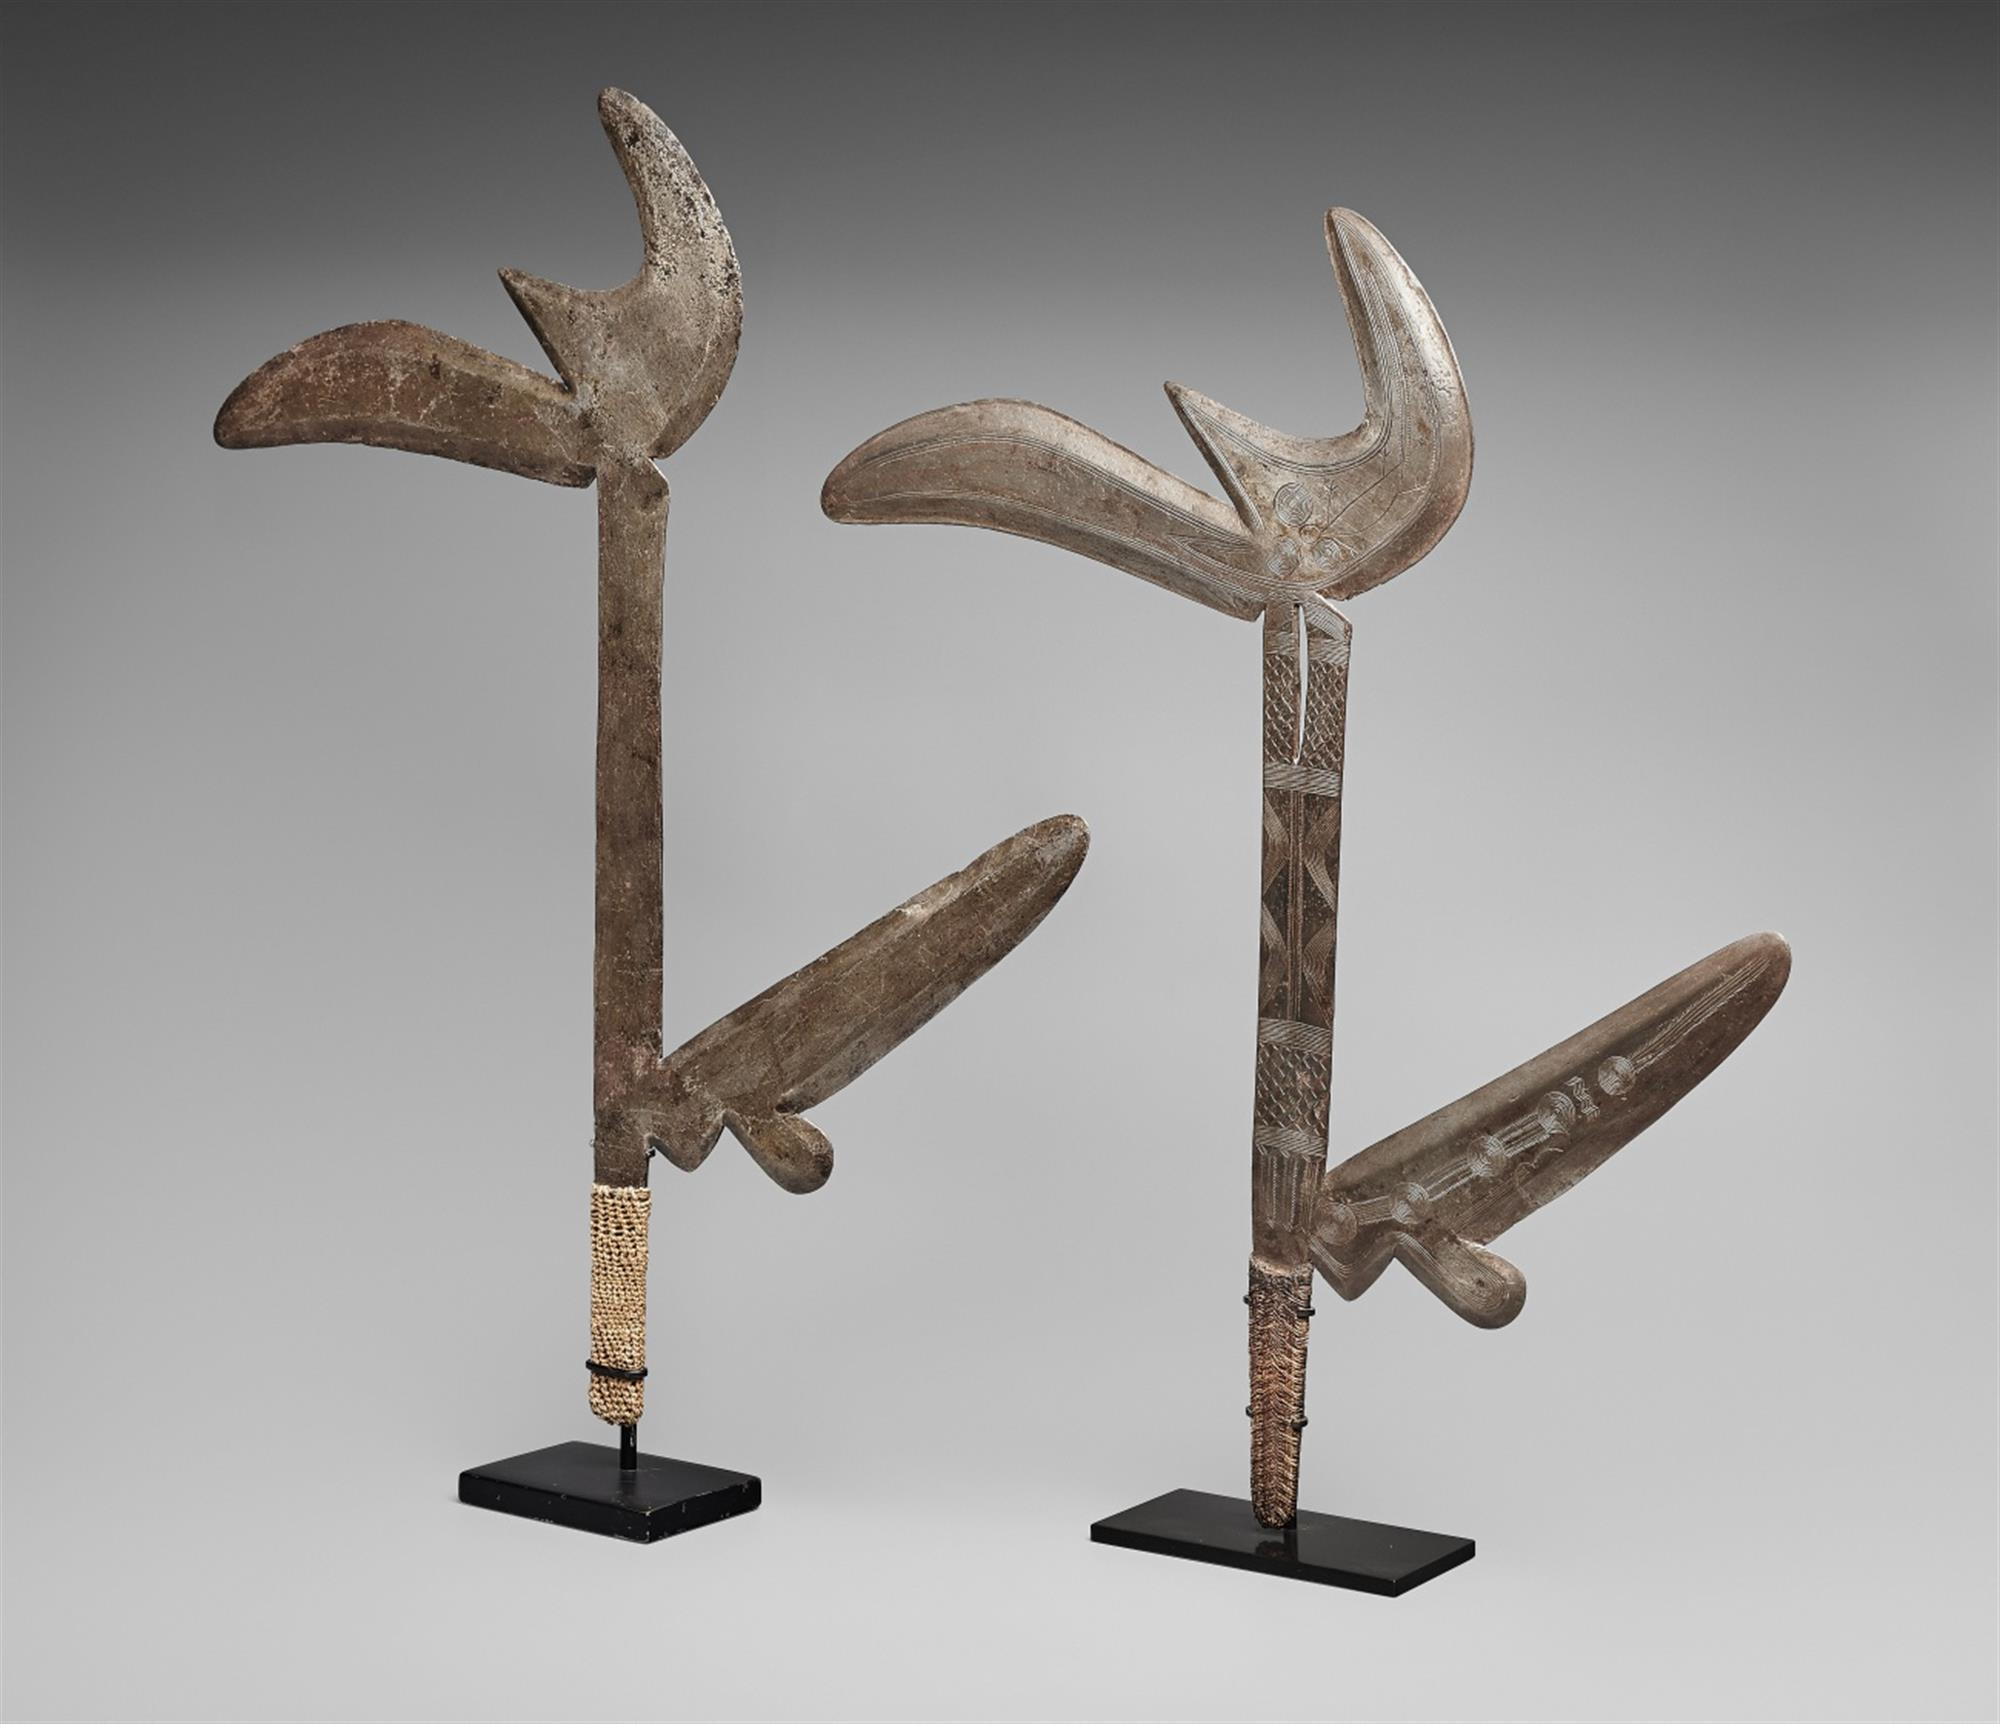 TWO ZANDE THROWING KNIVES